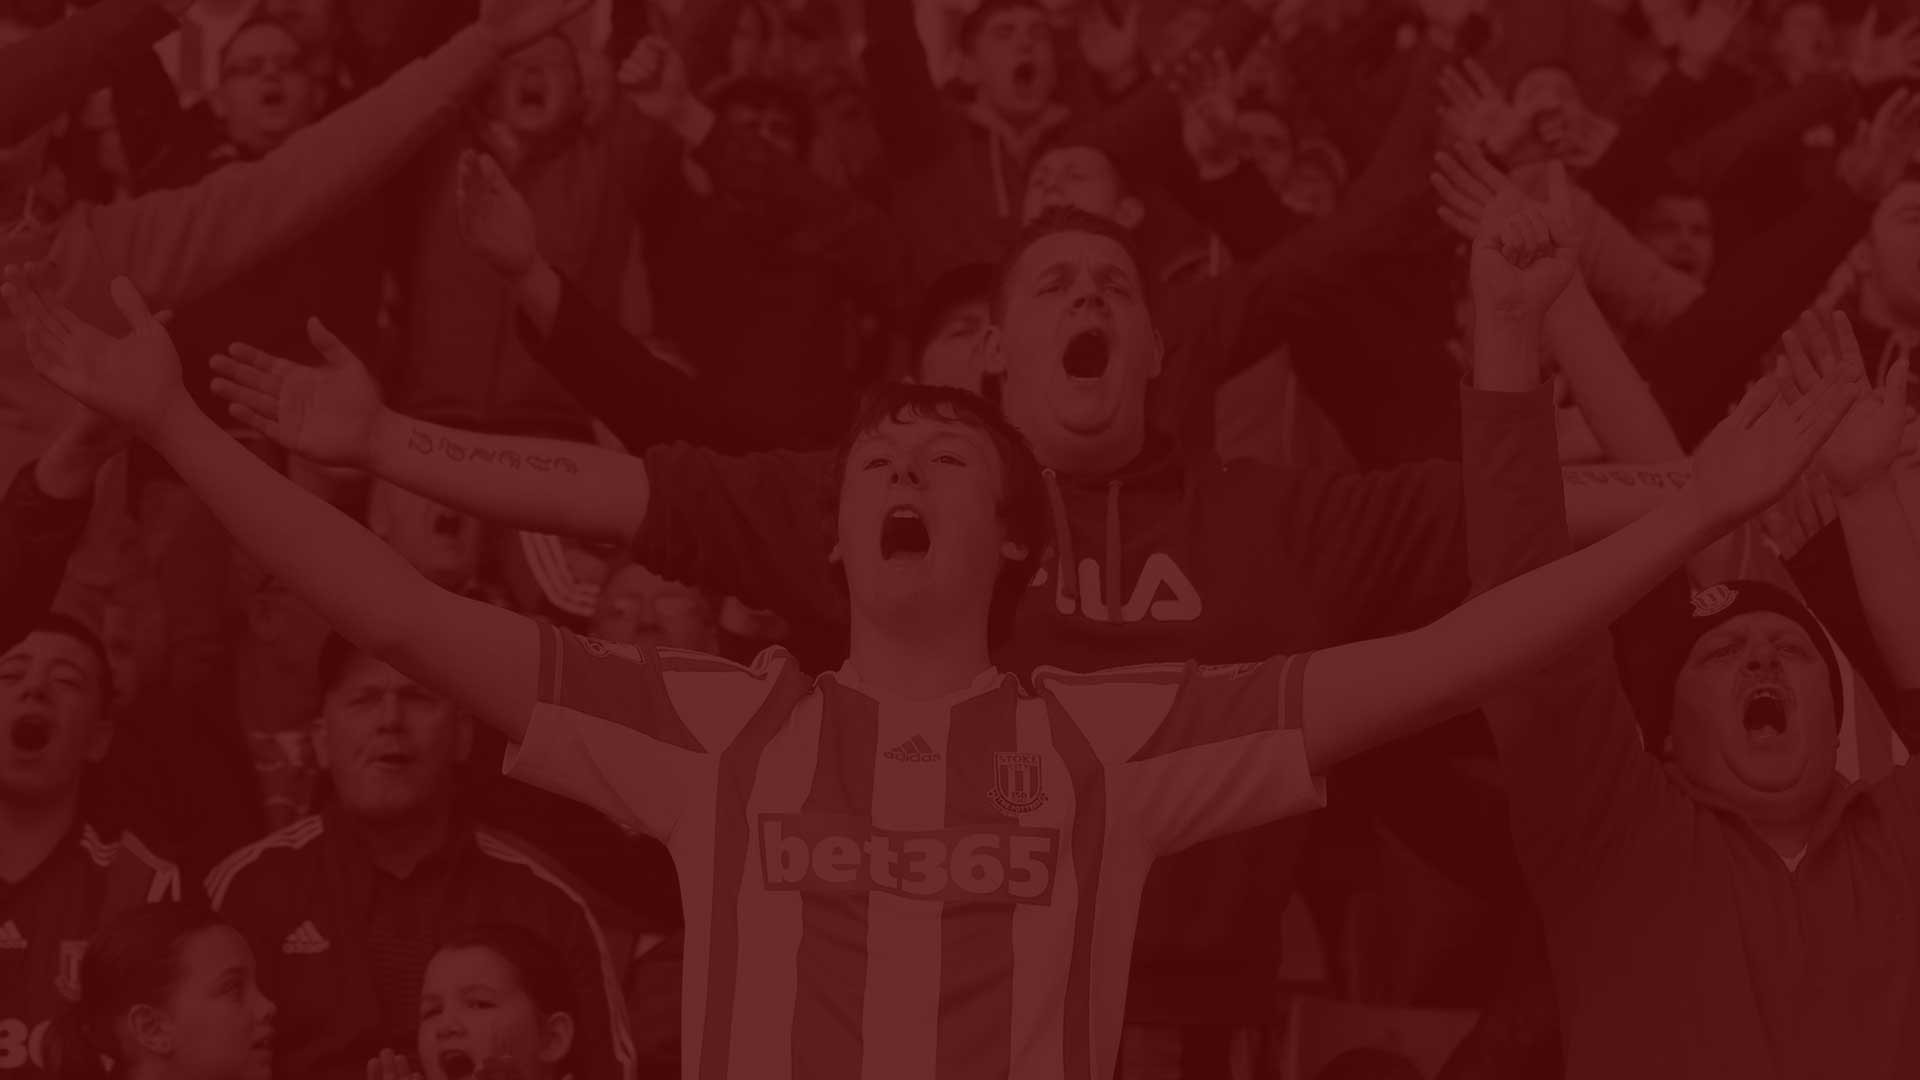 Stoke City red background